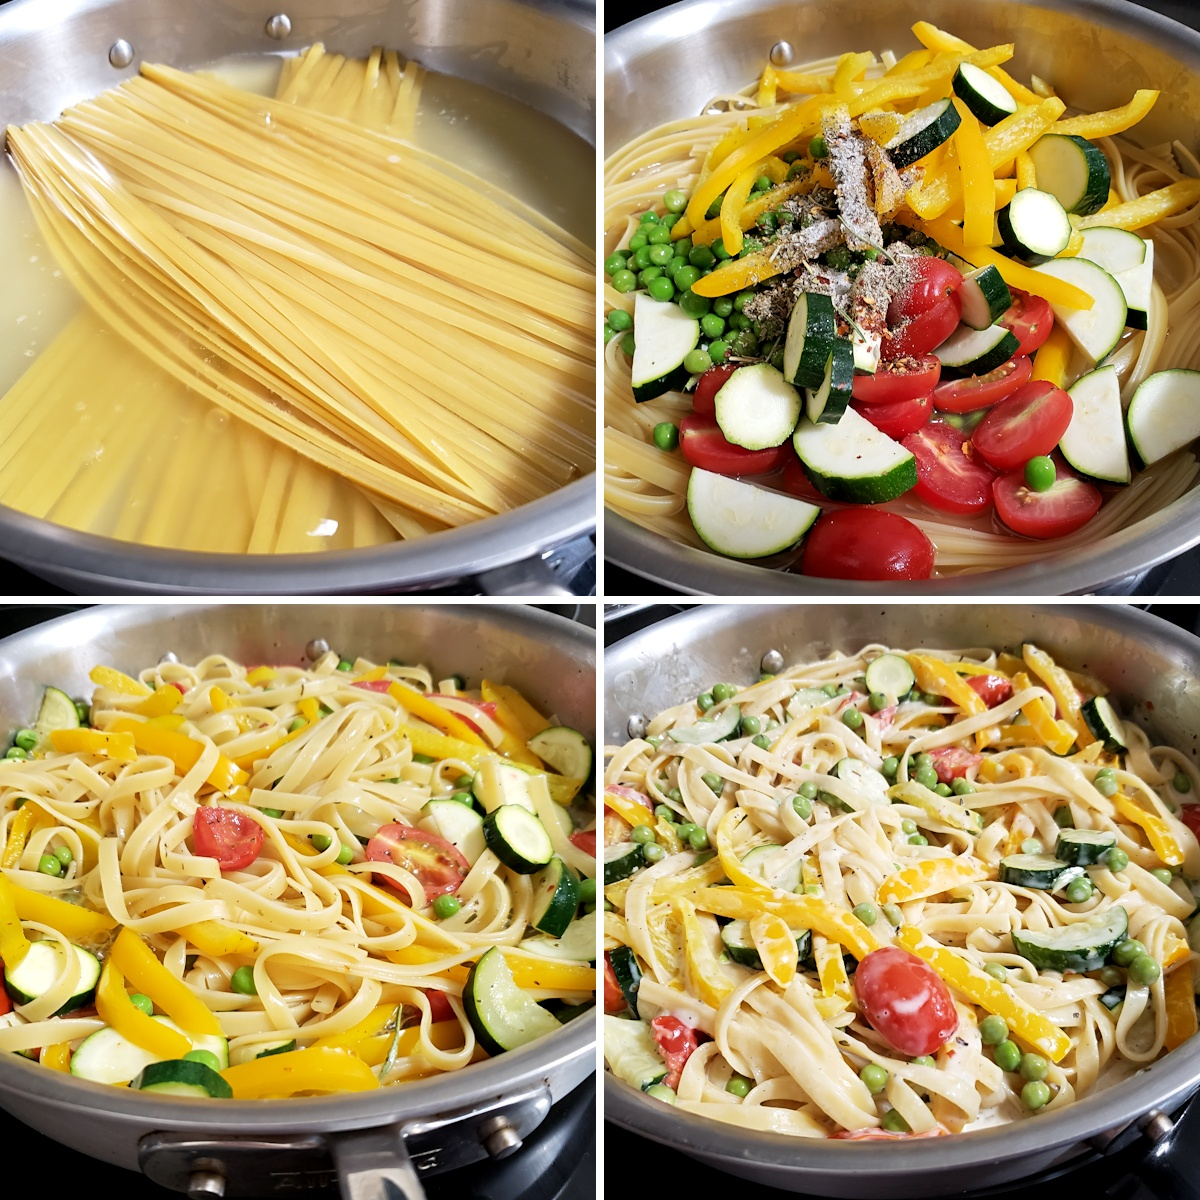 Fettuccine noodles and vegetables cooking in a saute pan.